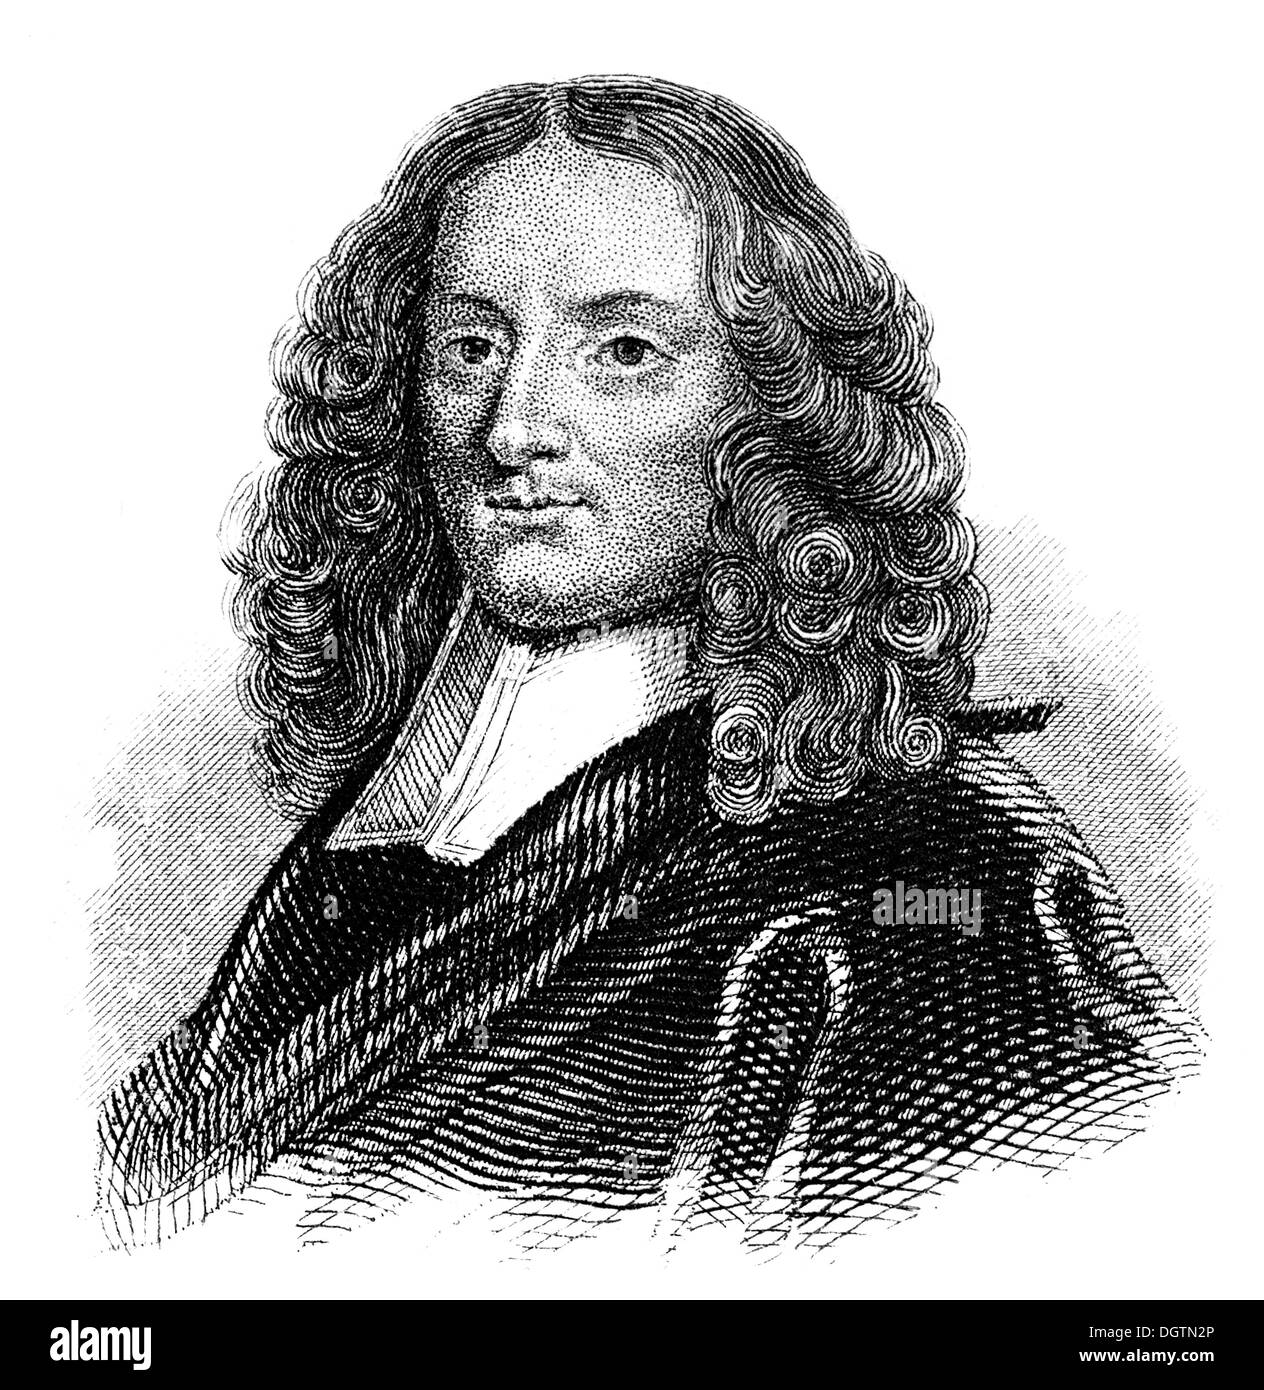 Pierre Bayle, 1647 - 1706, a French writer and philosopher, - Stock Image